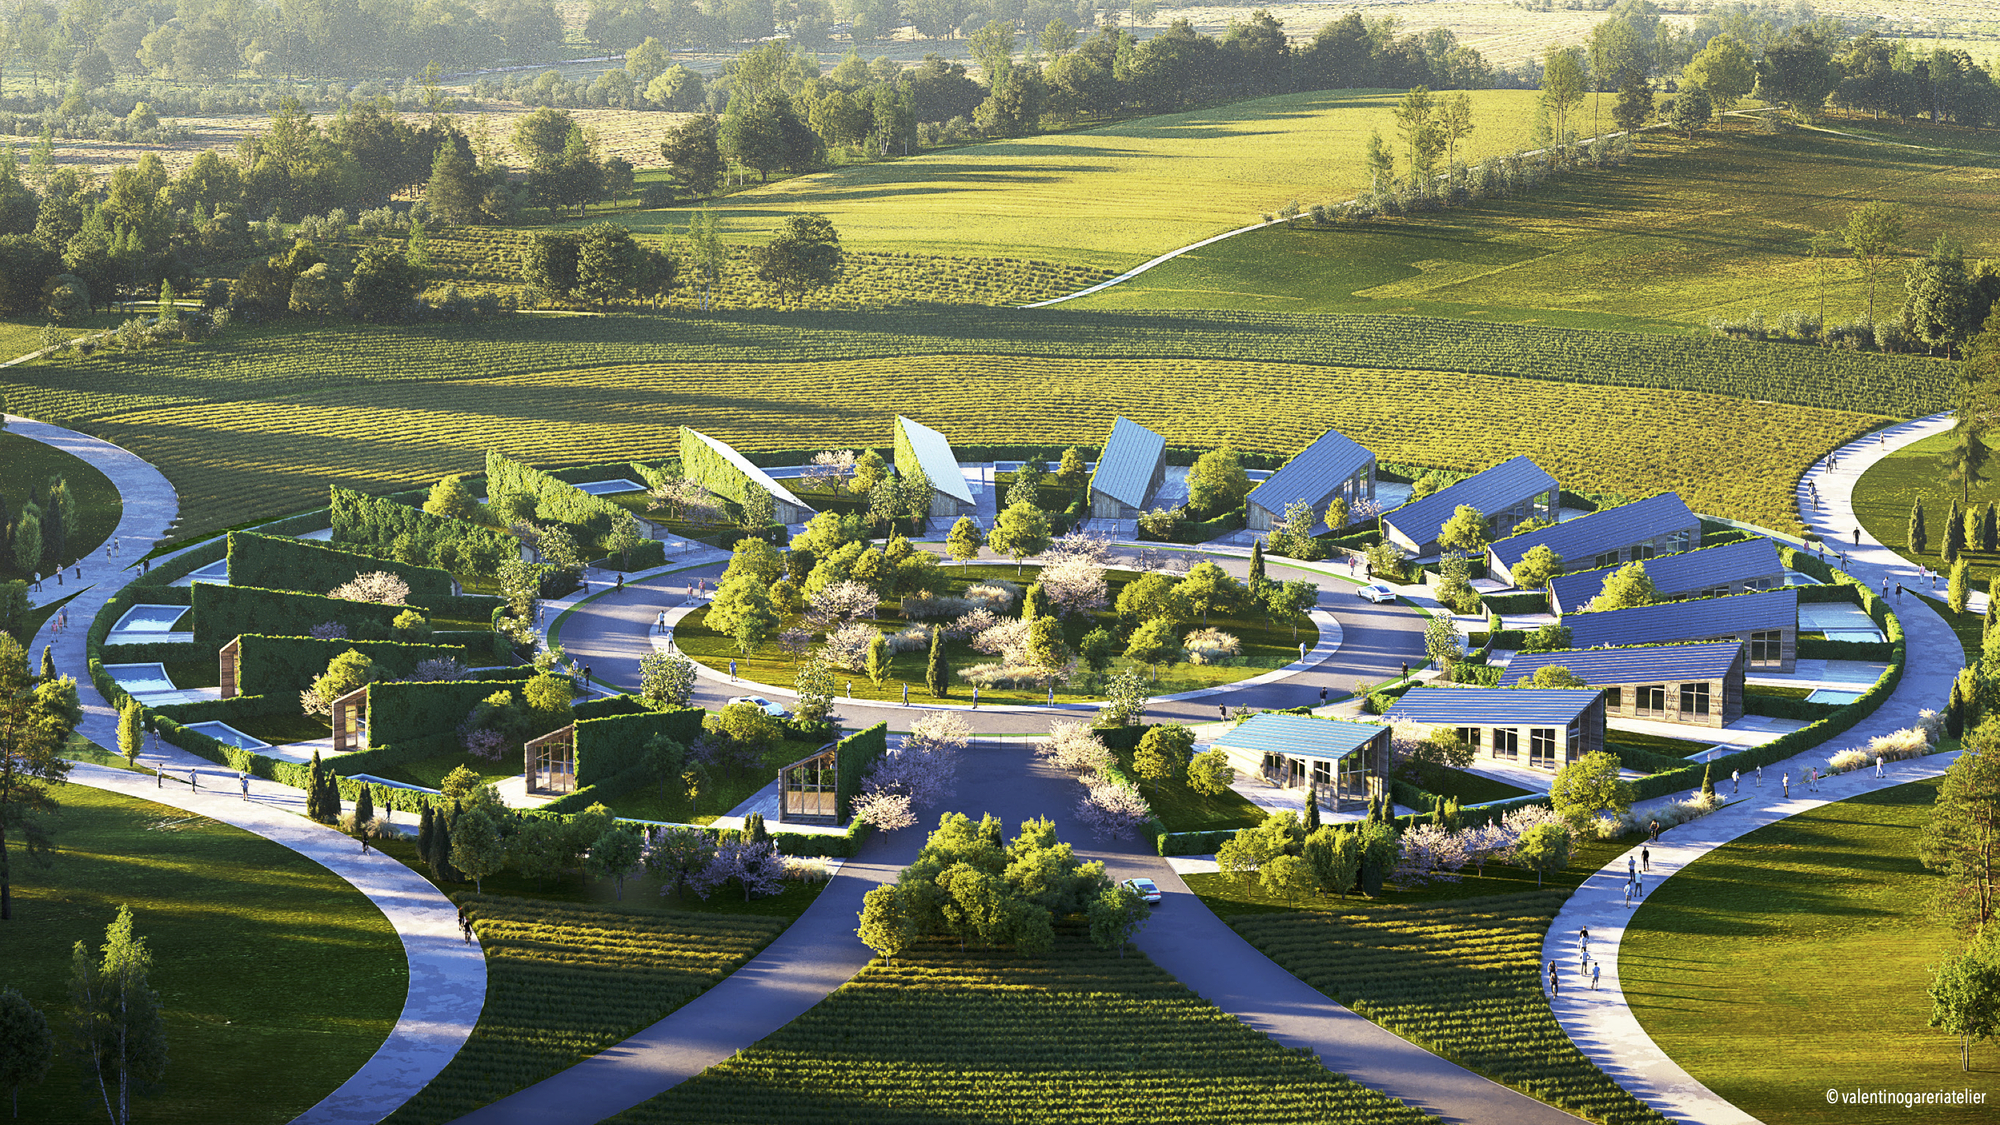 Valentino Gareri Atelier Proposes a New Model of Sustainable and 3D Printed Residential Village